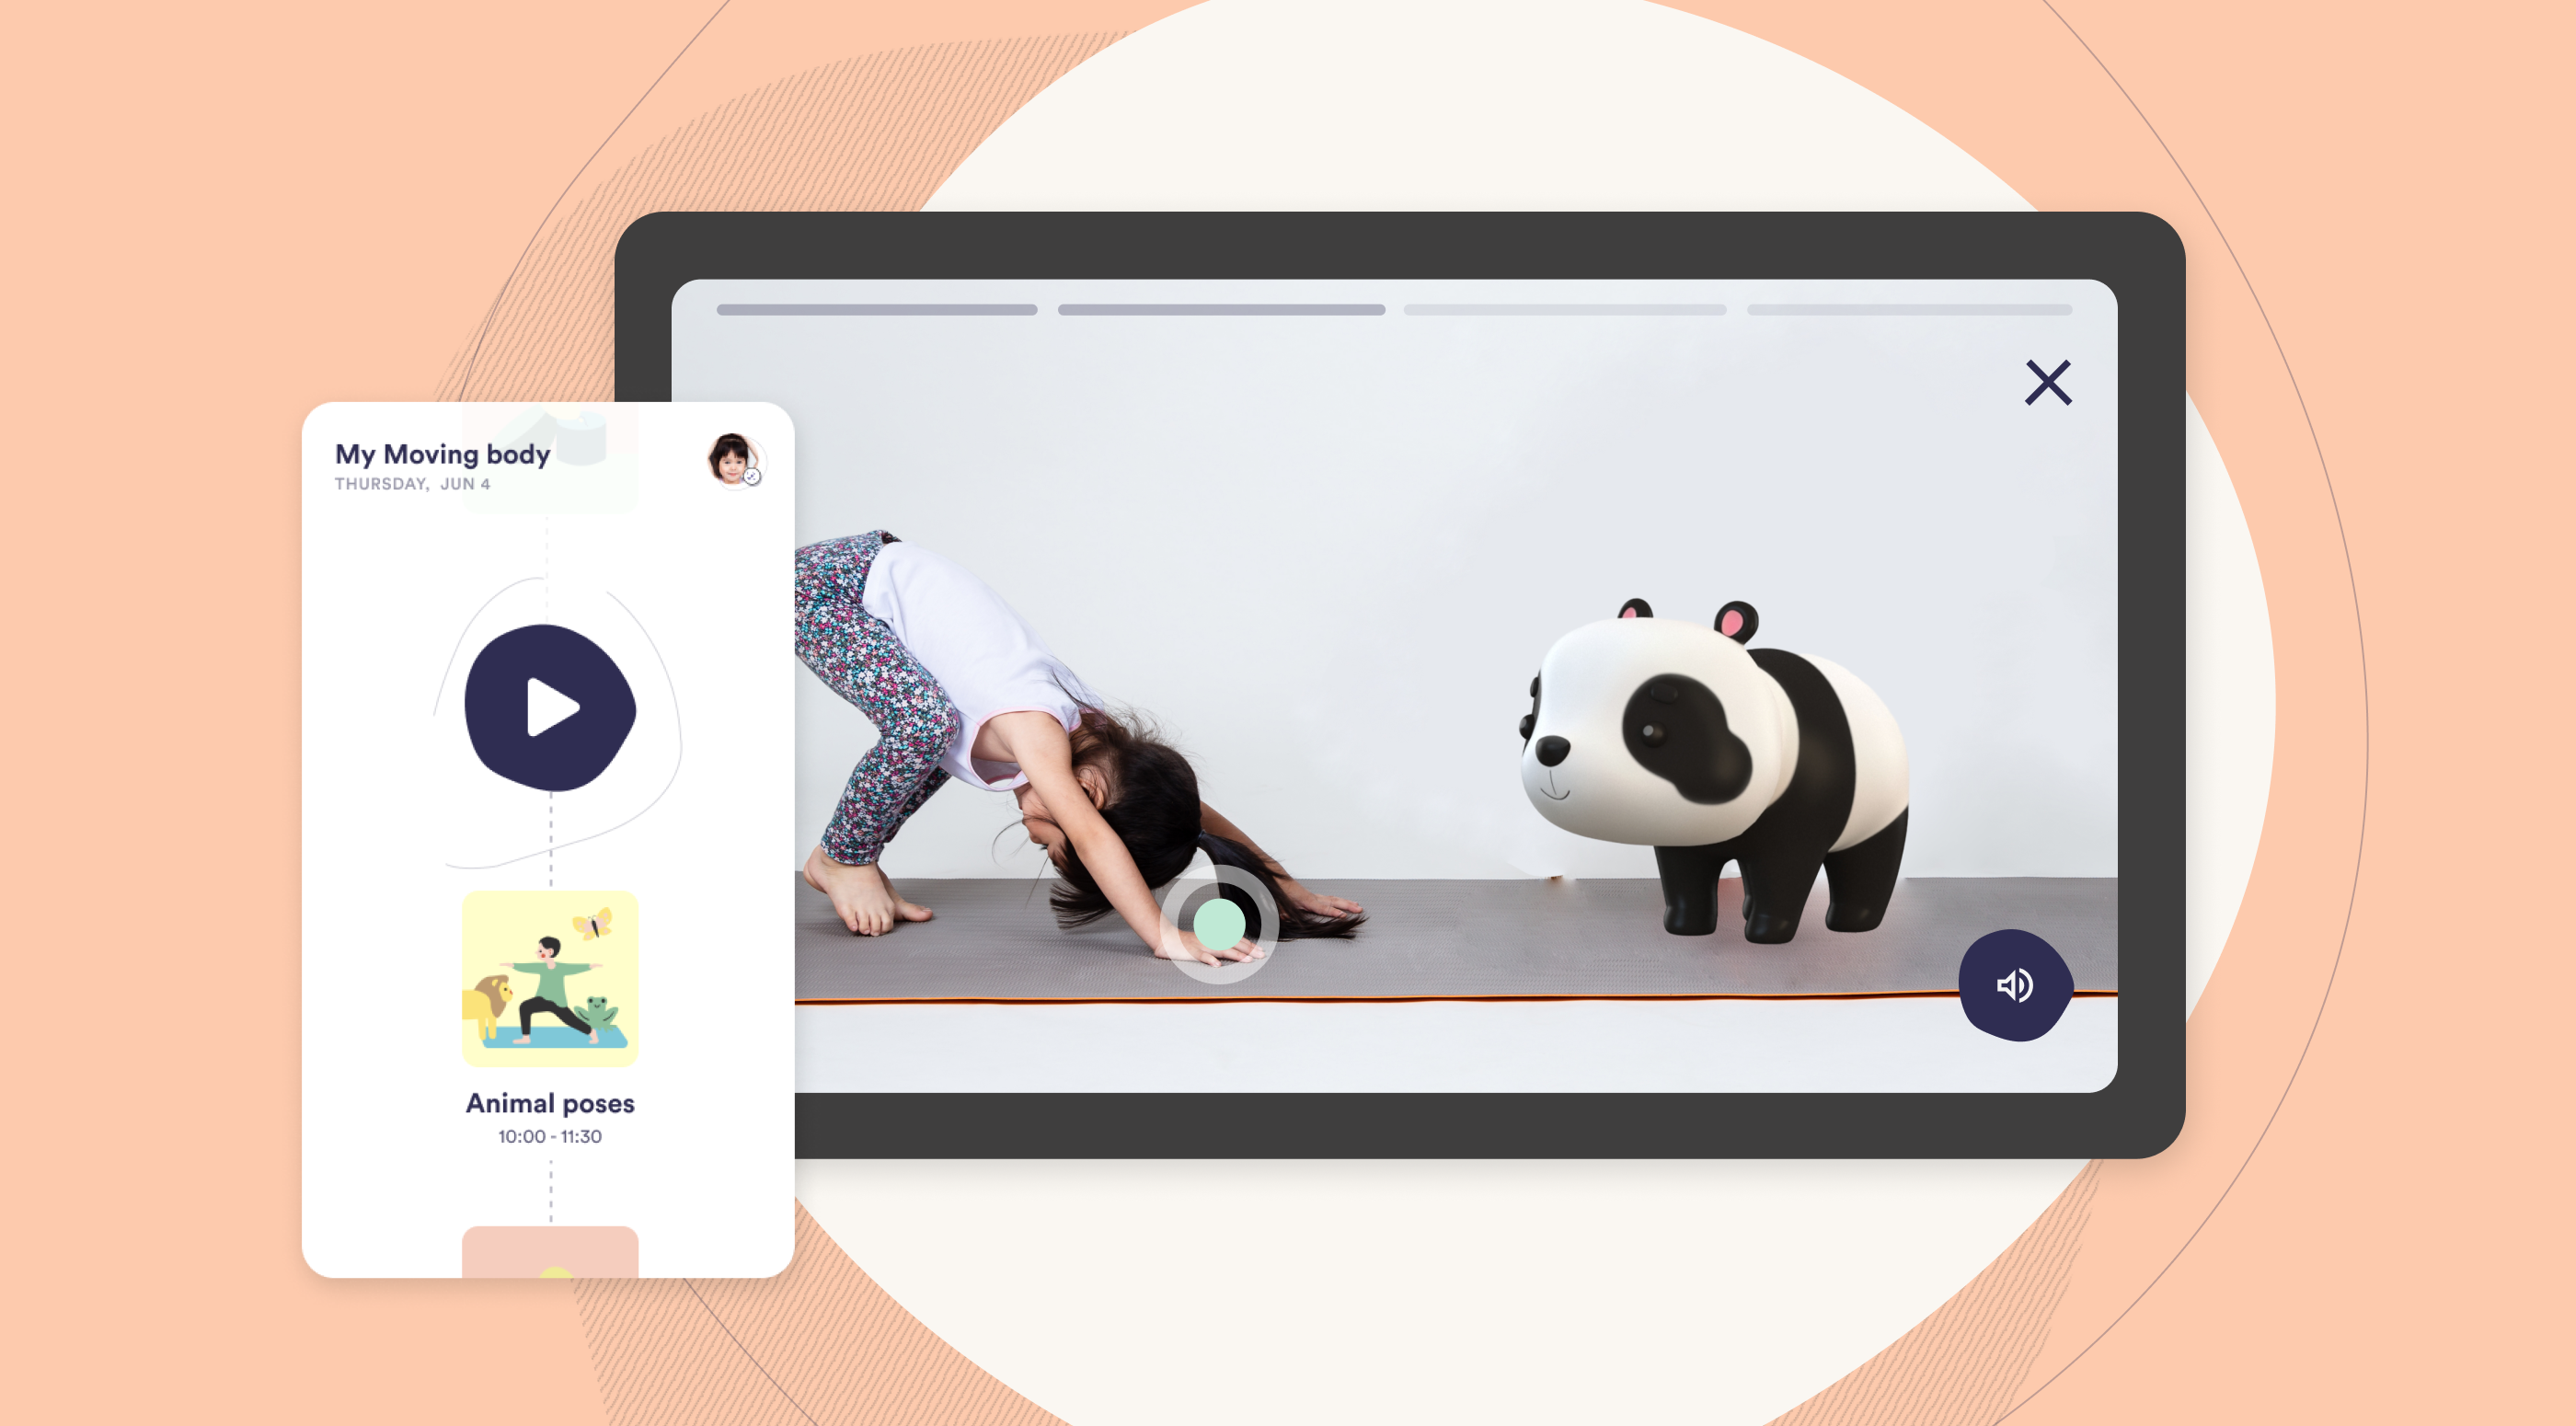 Little girl doing yoga with a virtual panda as part of a digital platform for children's learning and play activity